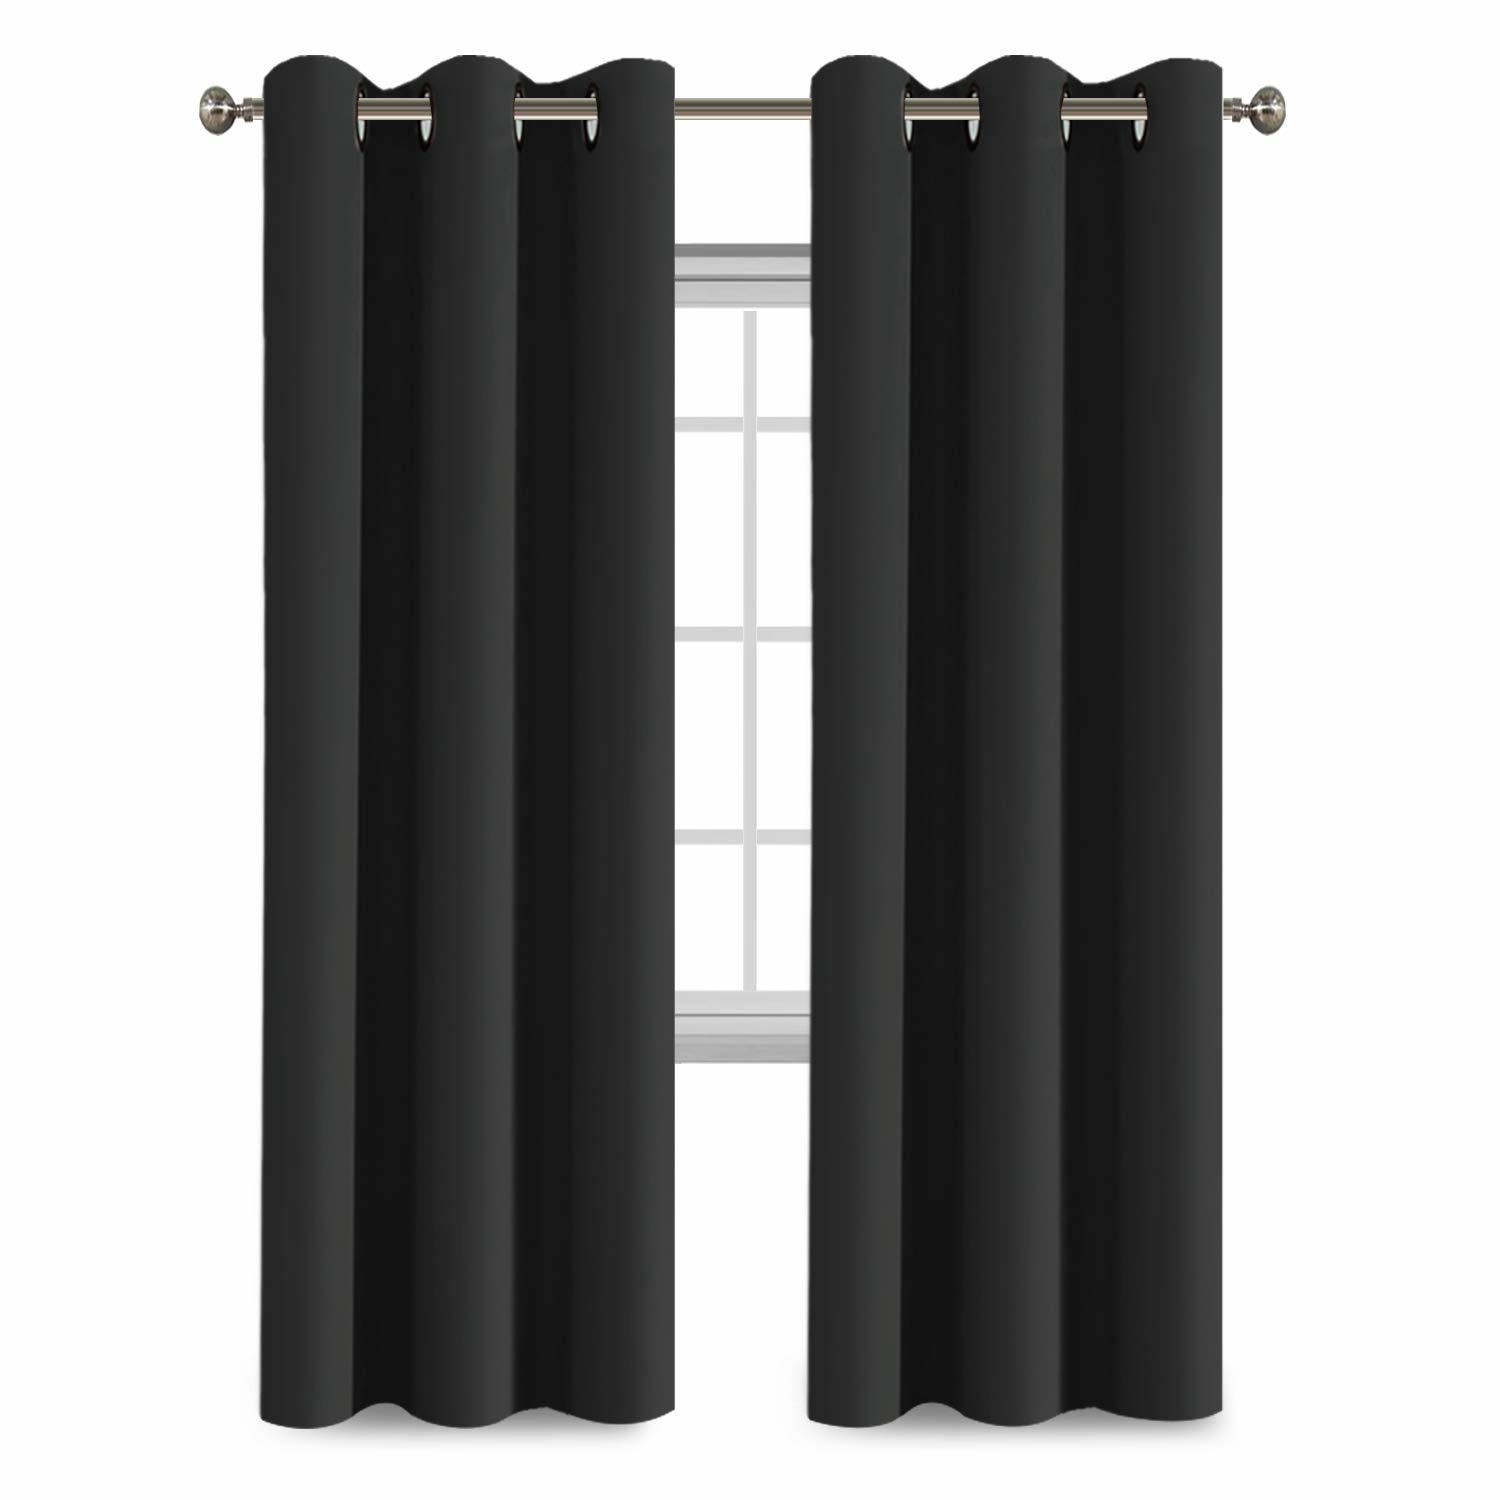 Soundproof Blackout Curtains